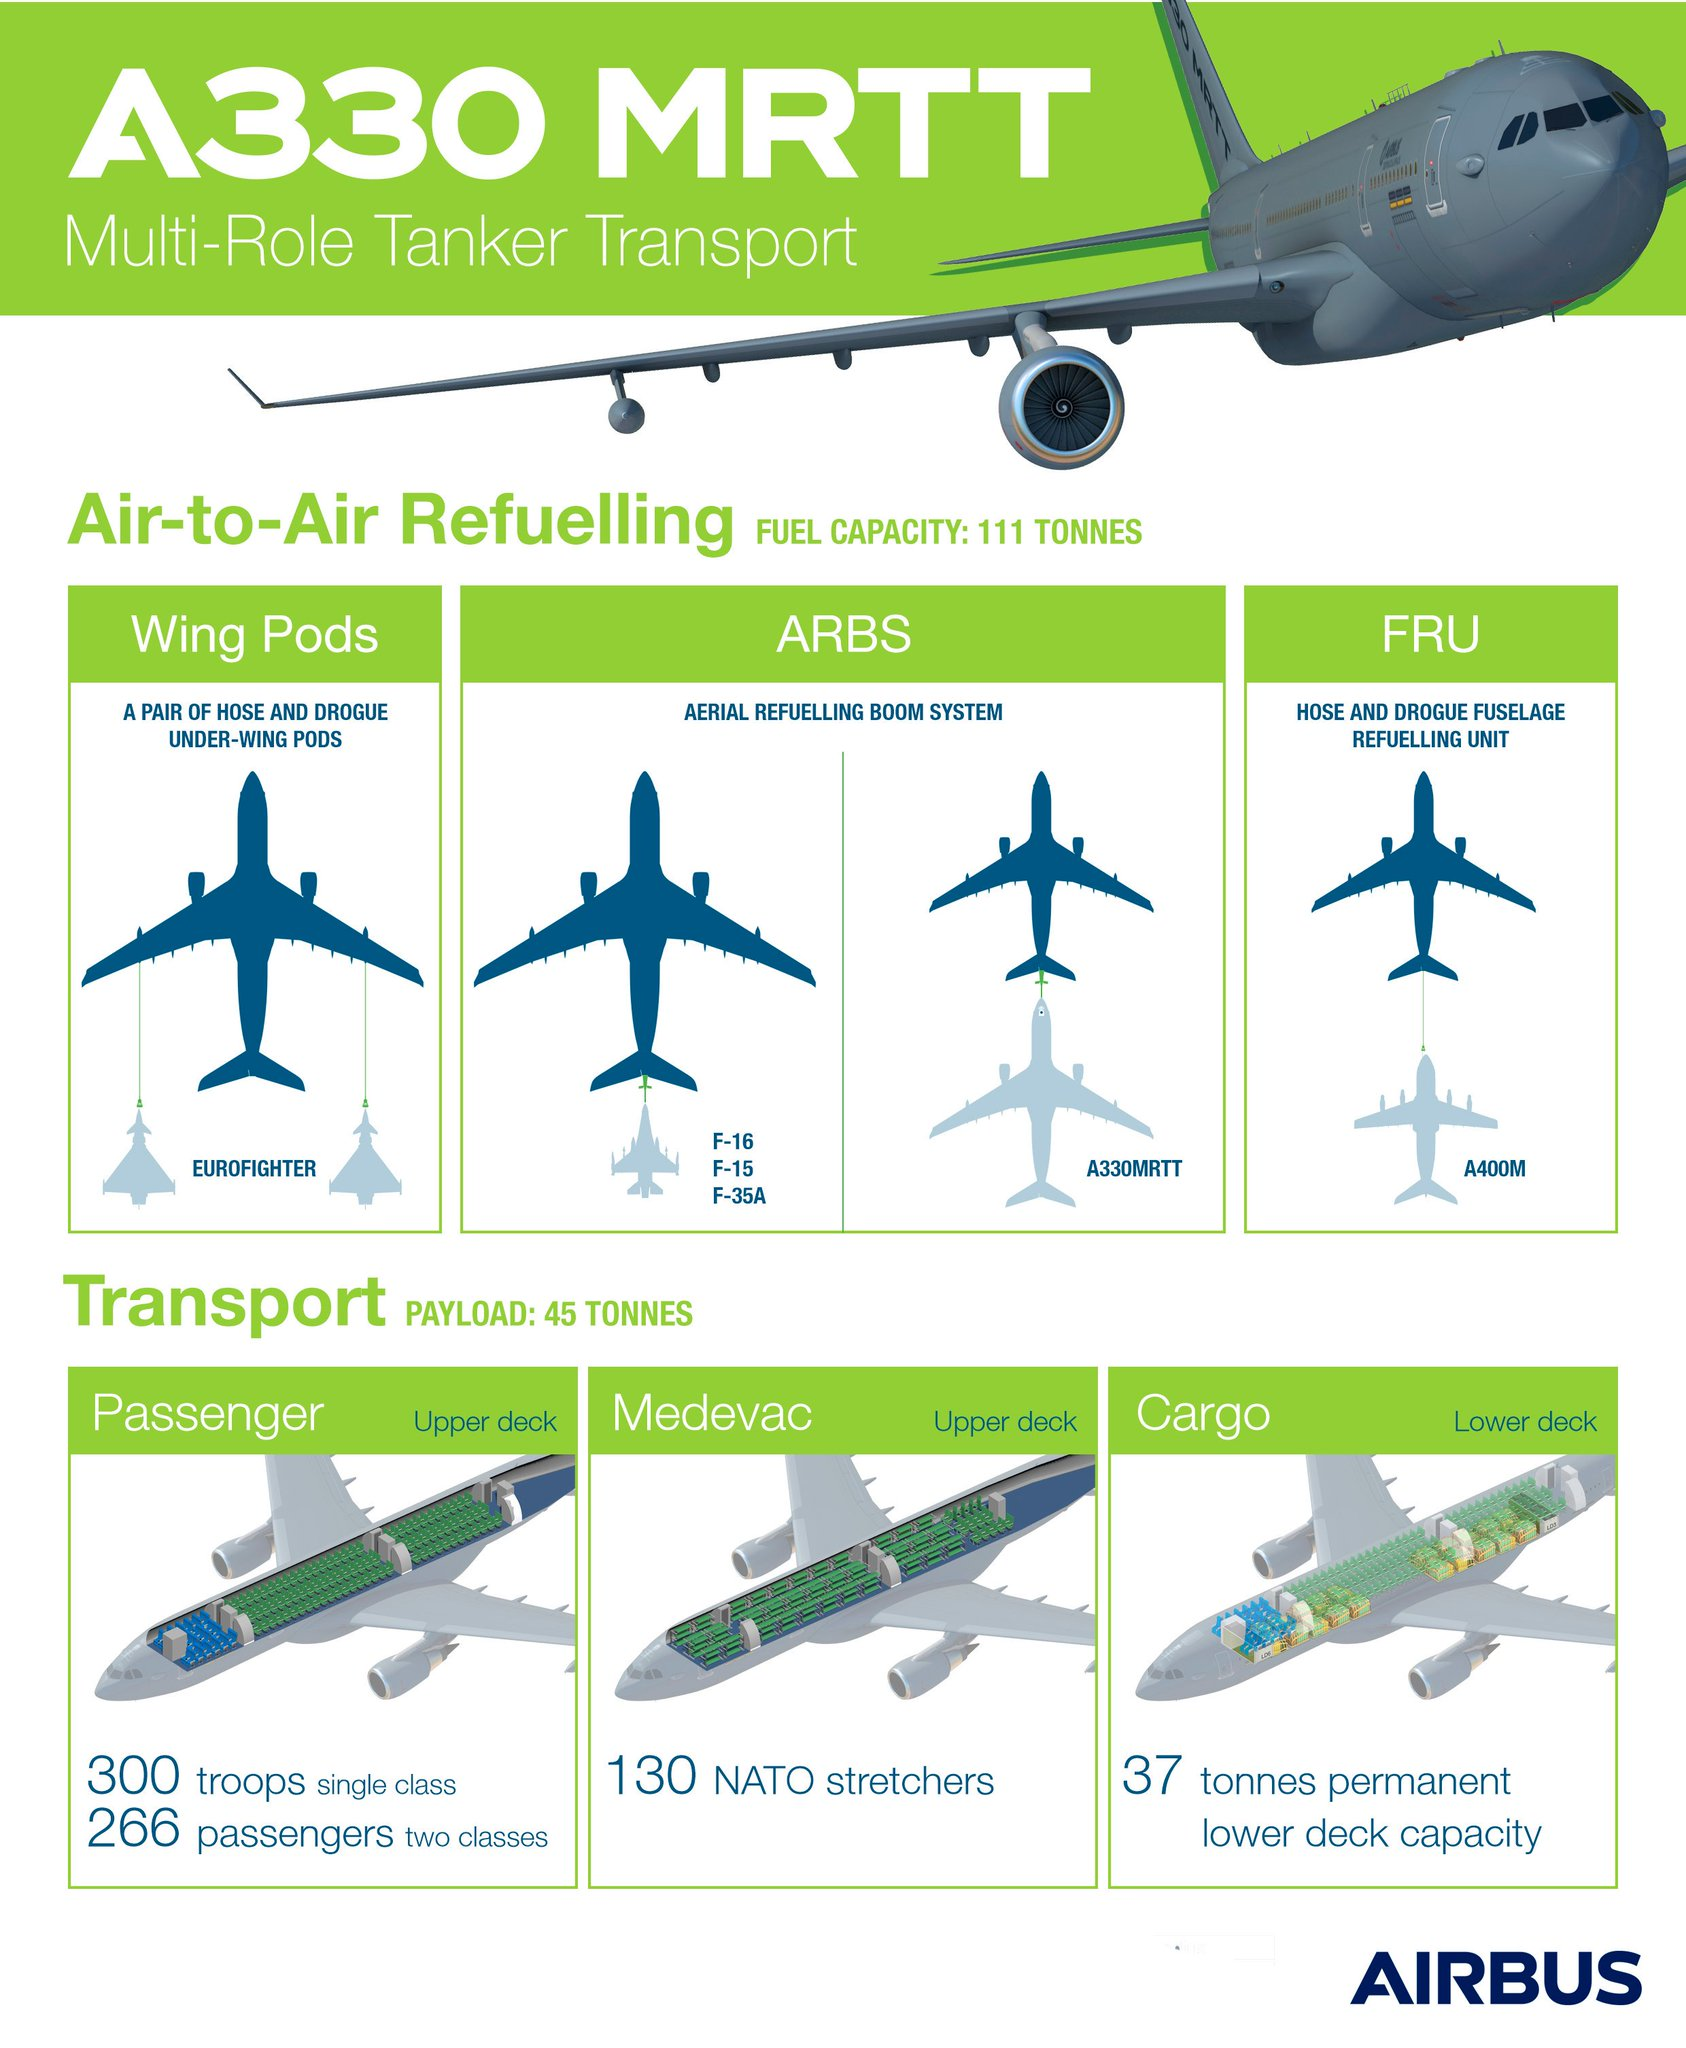 """Airbus Defence on Twitter: """"📊 #Infographic - The #A330MRTT is the 21st century benchmark for new generation tanker/transport aircraft, combat-proven and with unique multi-role capabilities. https://t.co/B90O1hmsBz #DAS19 #DubaiAirshow… https://t.co ..."""